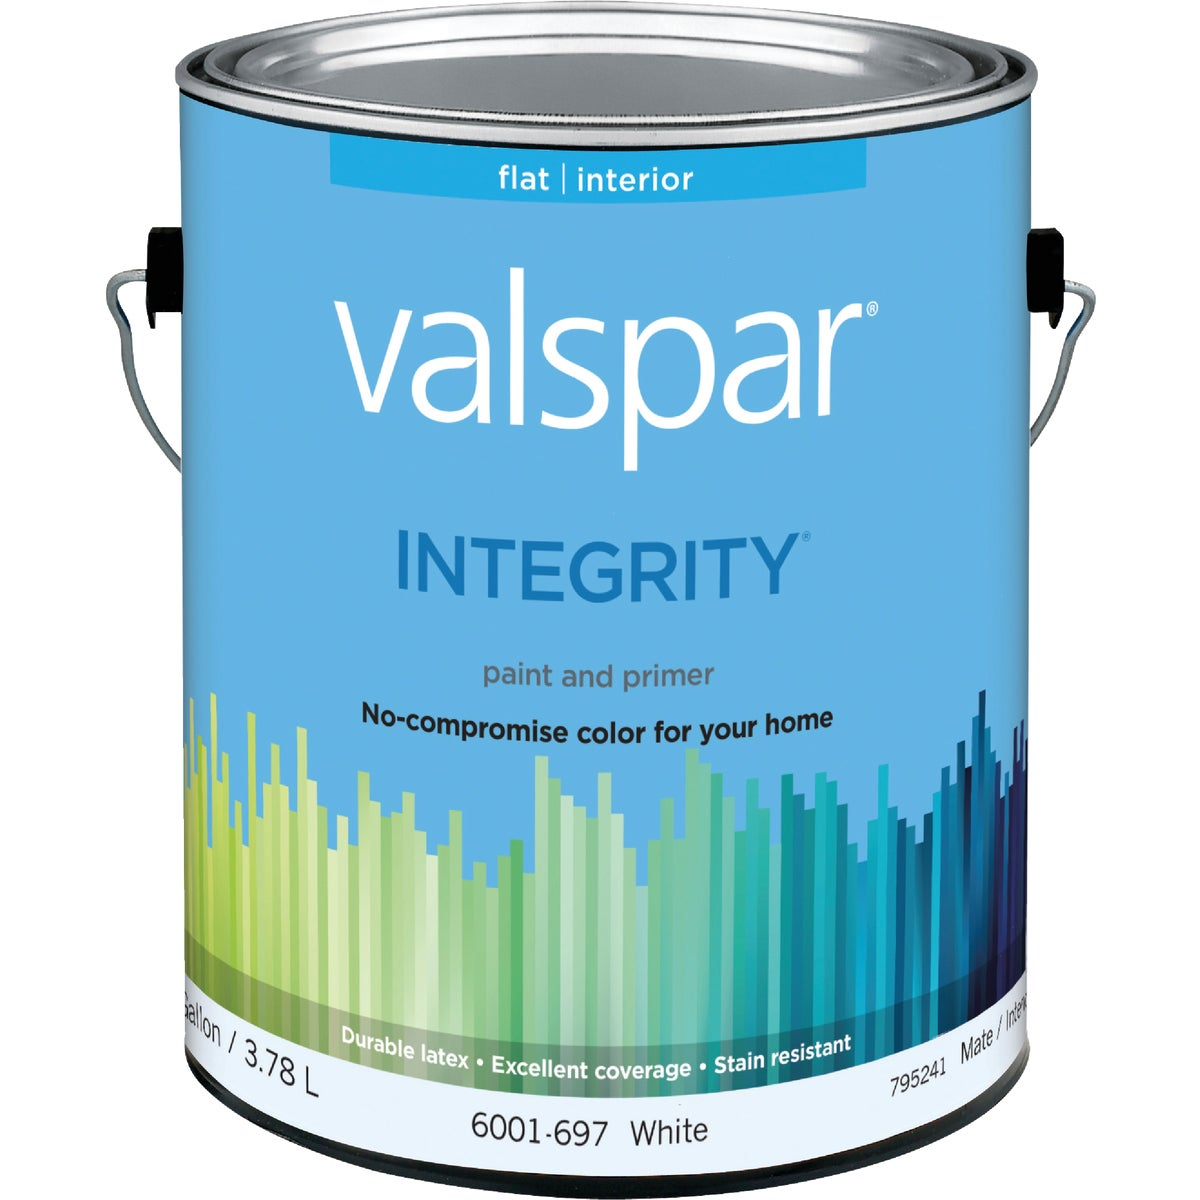 INT FLAT WHITE PAINT - 004.6001697.007 by Valspar Corp